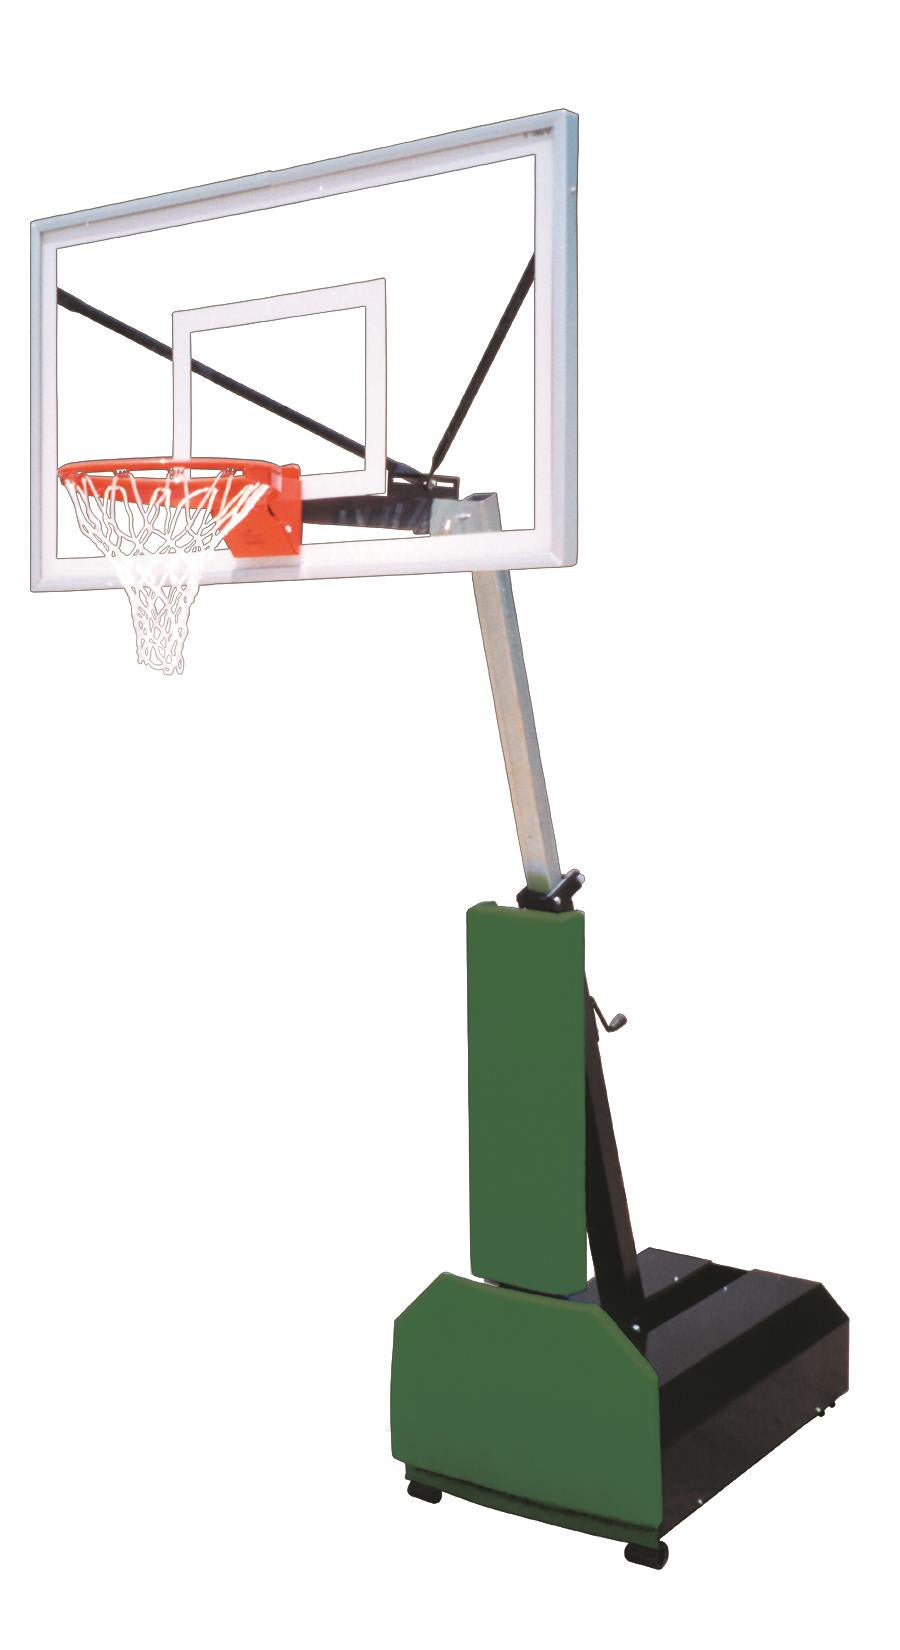 First Team Fury Select Adjustable Portable Basketball Hoop 60 inch Acrylic